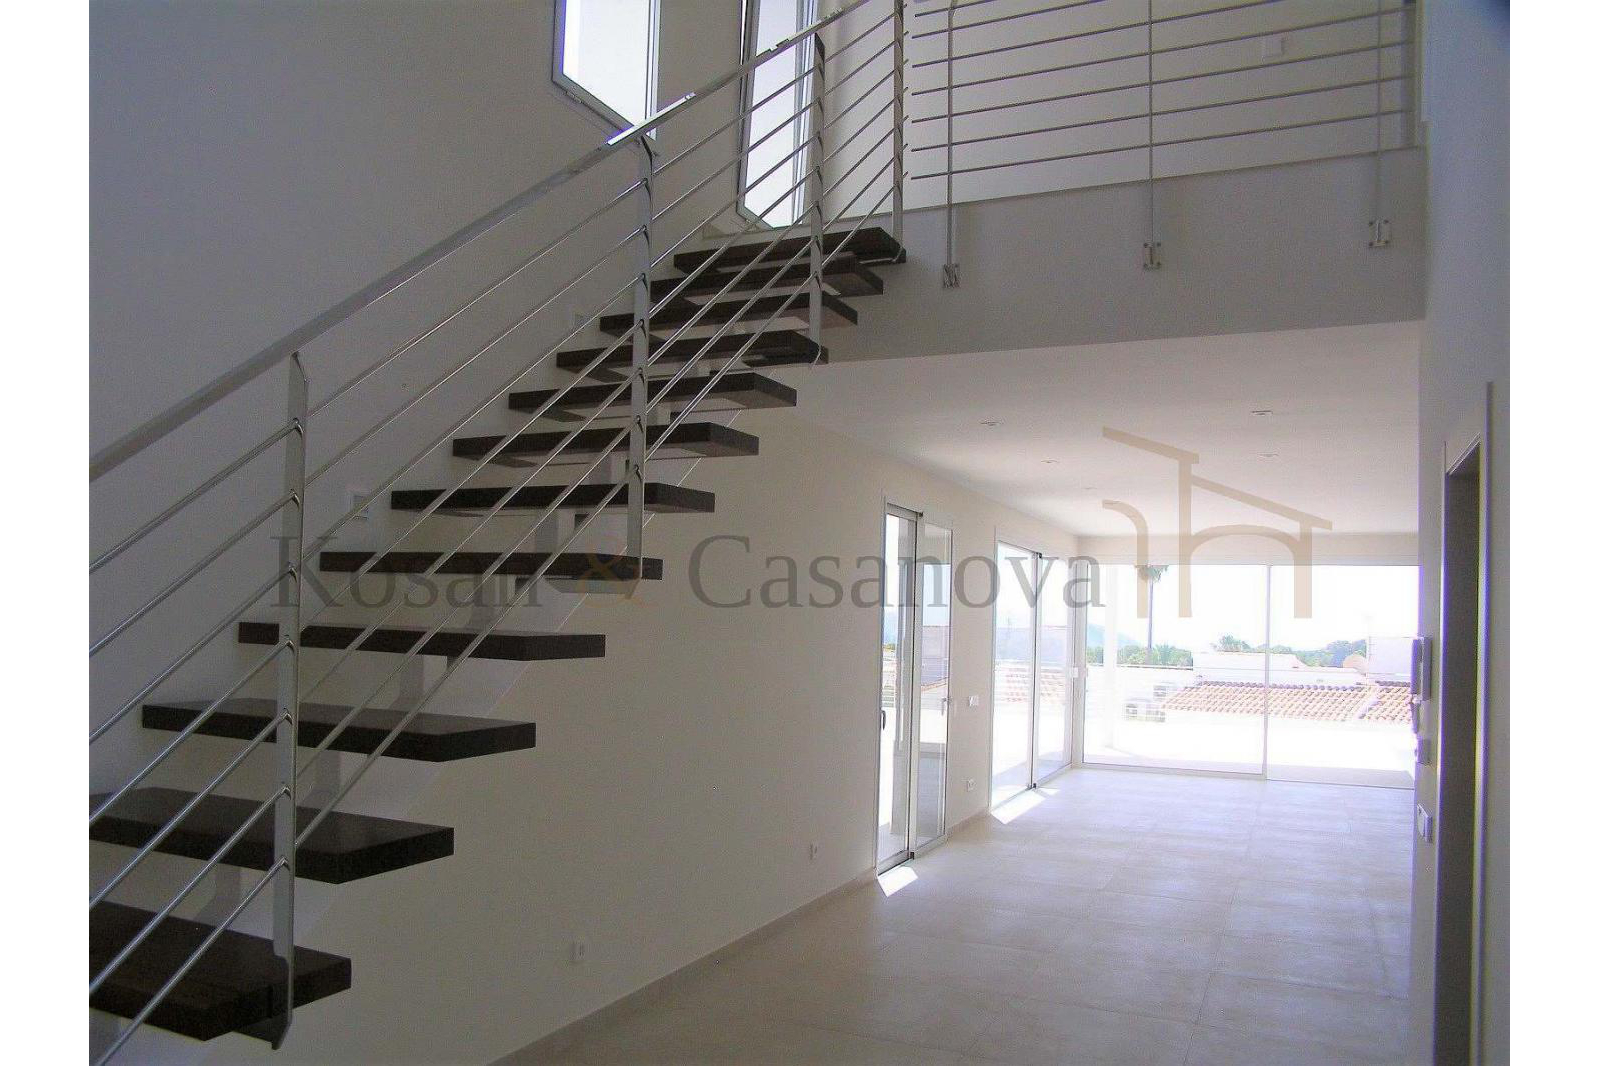 Moraira / Teulada- A contemporary Villa, bright and airy, with openspaces, ideal for modern living pic 12